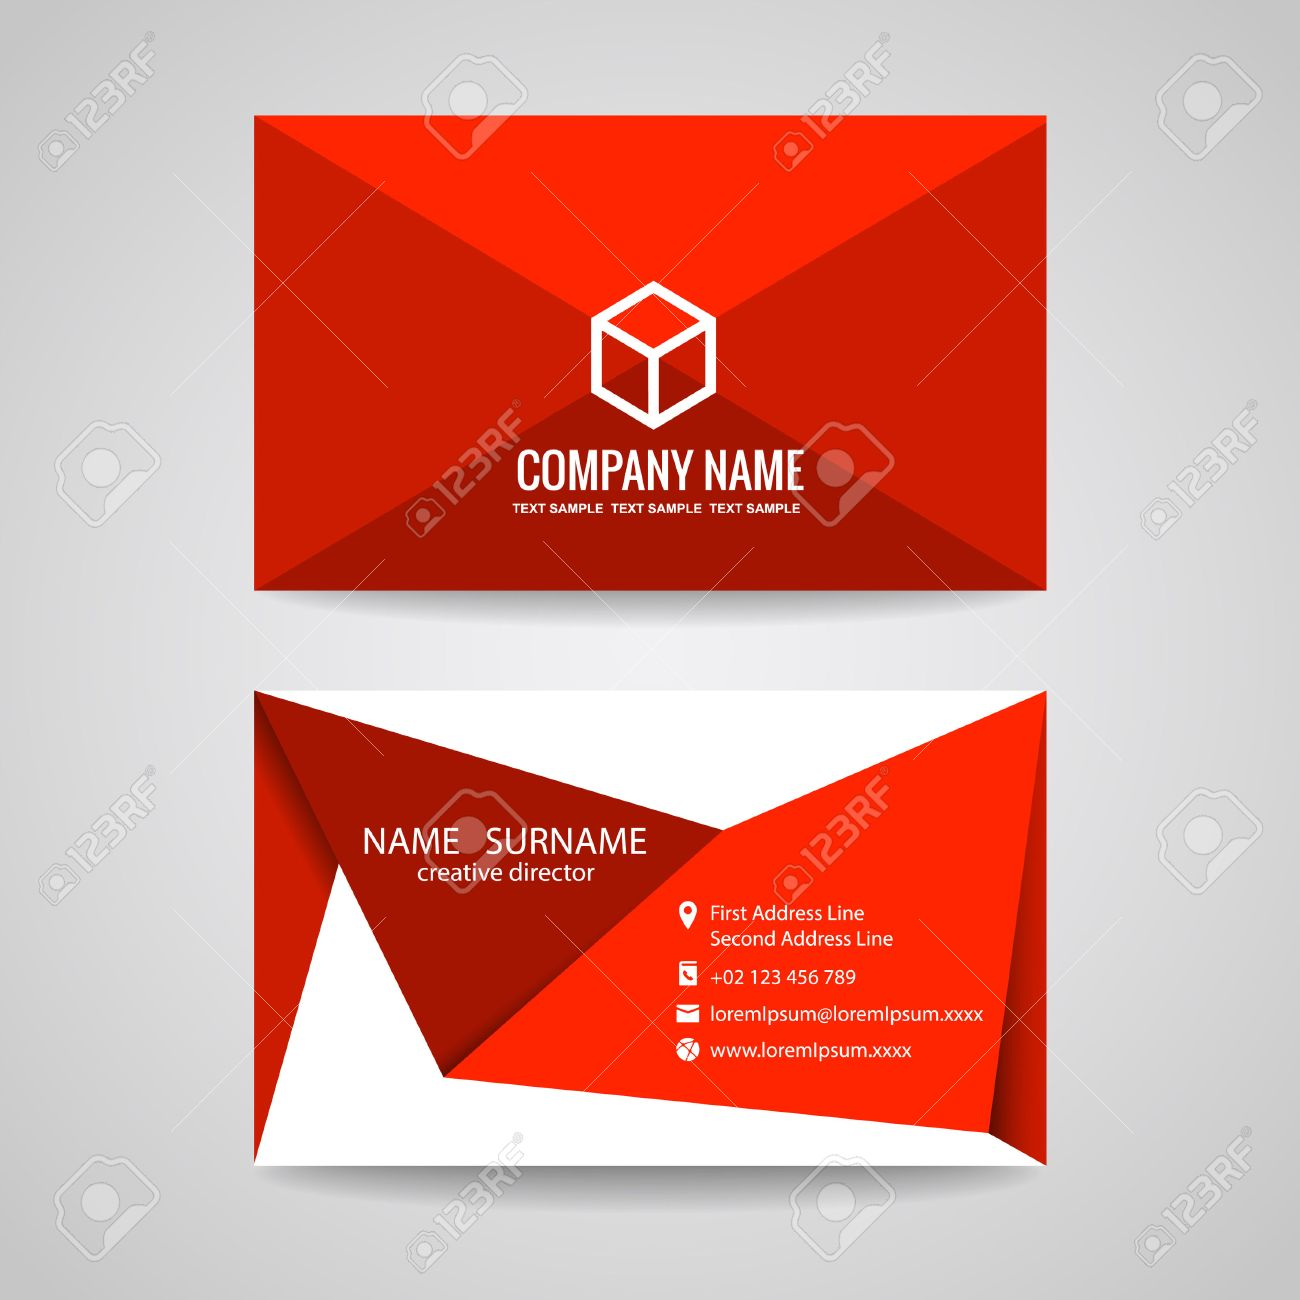 Vecteur De Carte Visite Conception Graphique Triangle Rouge Pli